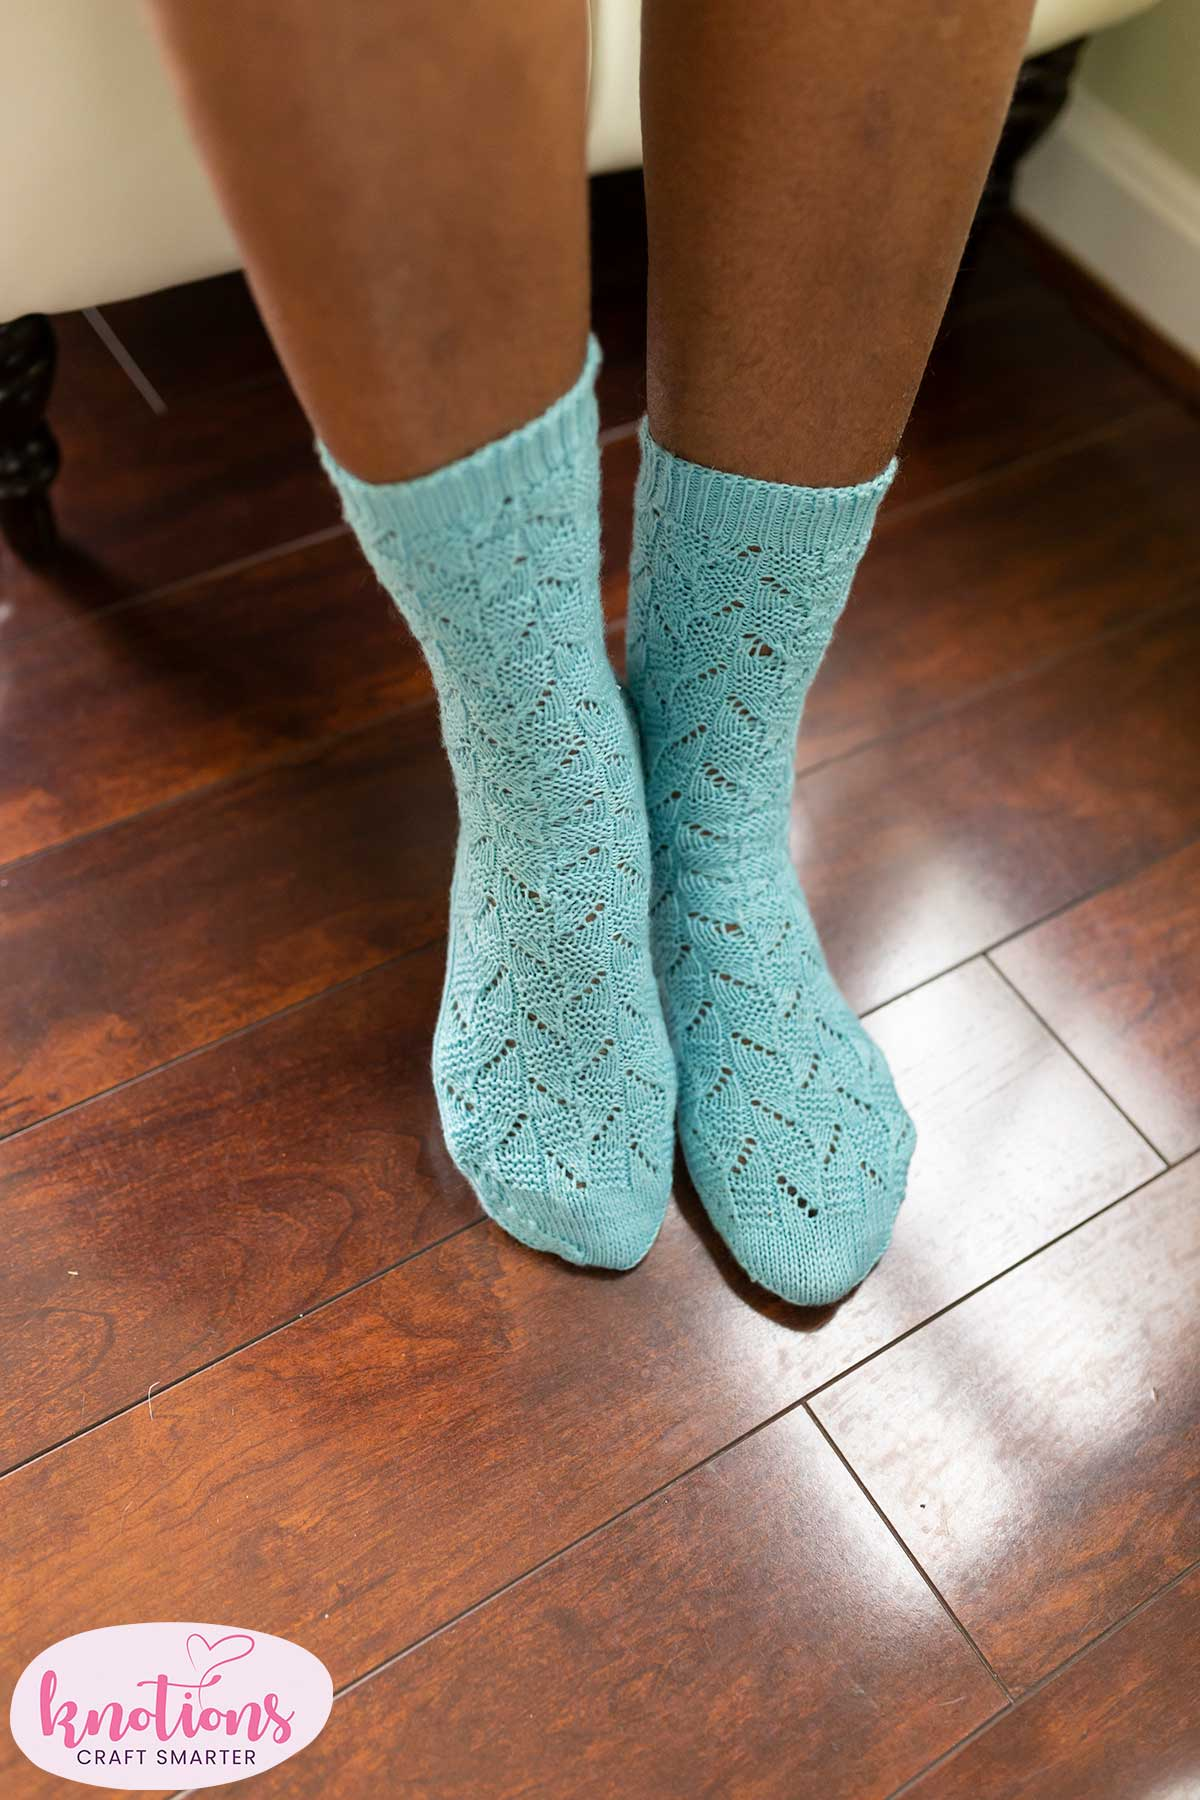 A person wearing a pair of pale blue fingering-weight lace socks